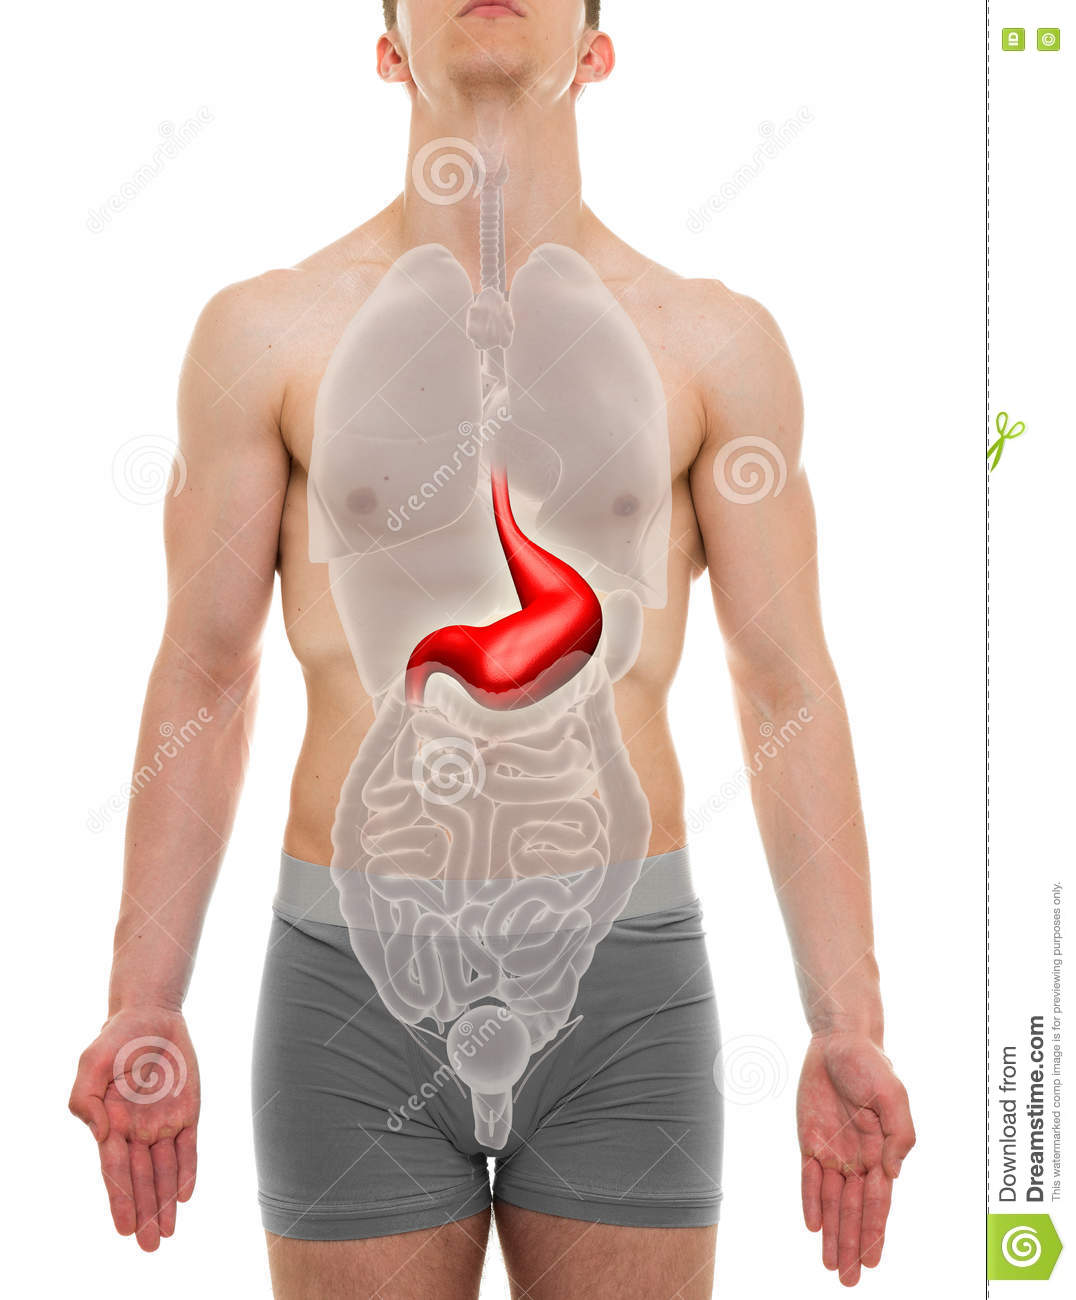 Magen Anatomie Stock Images - 1,385 Photos